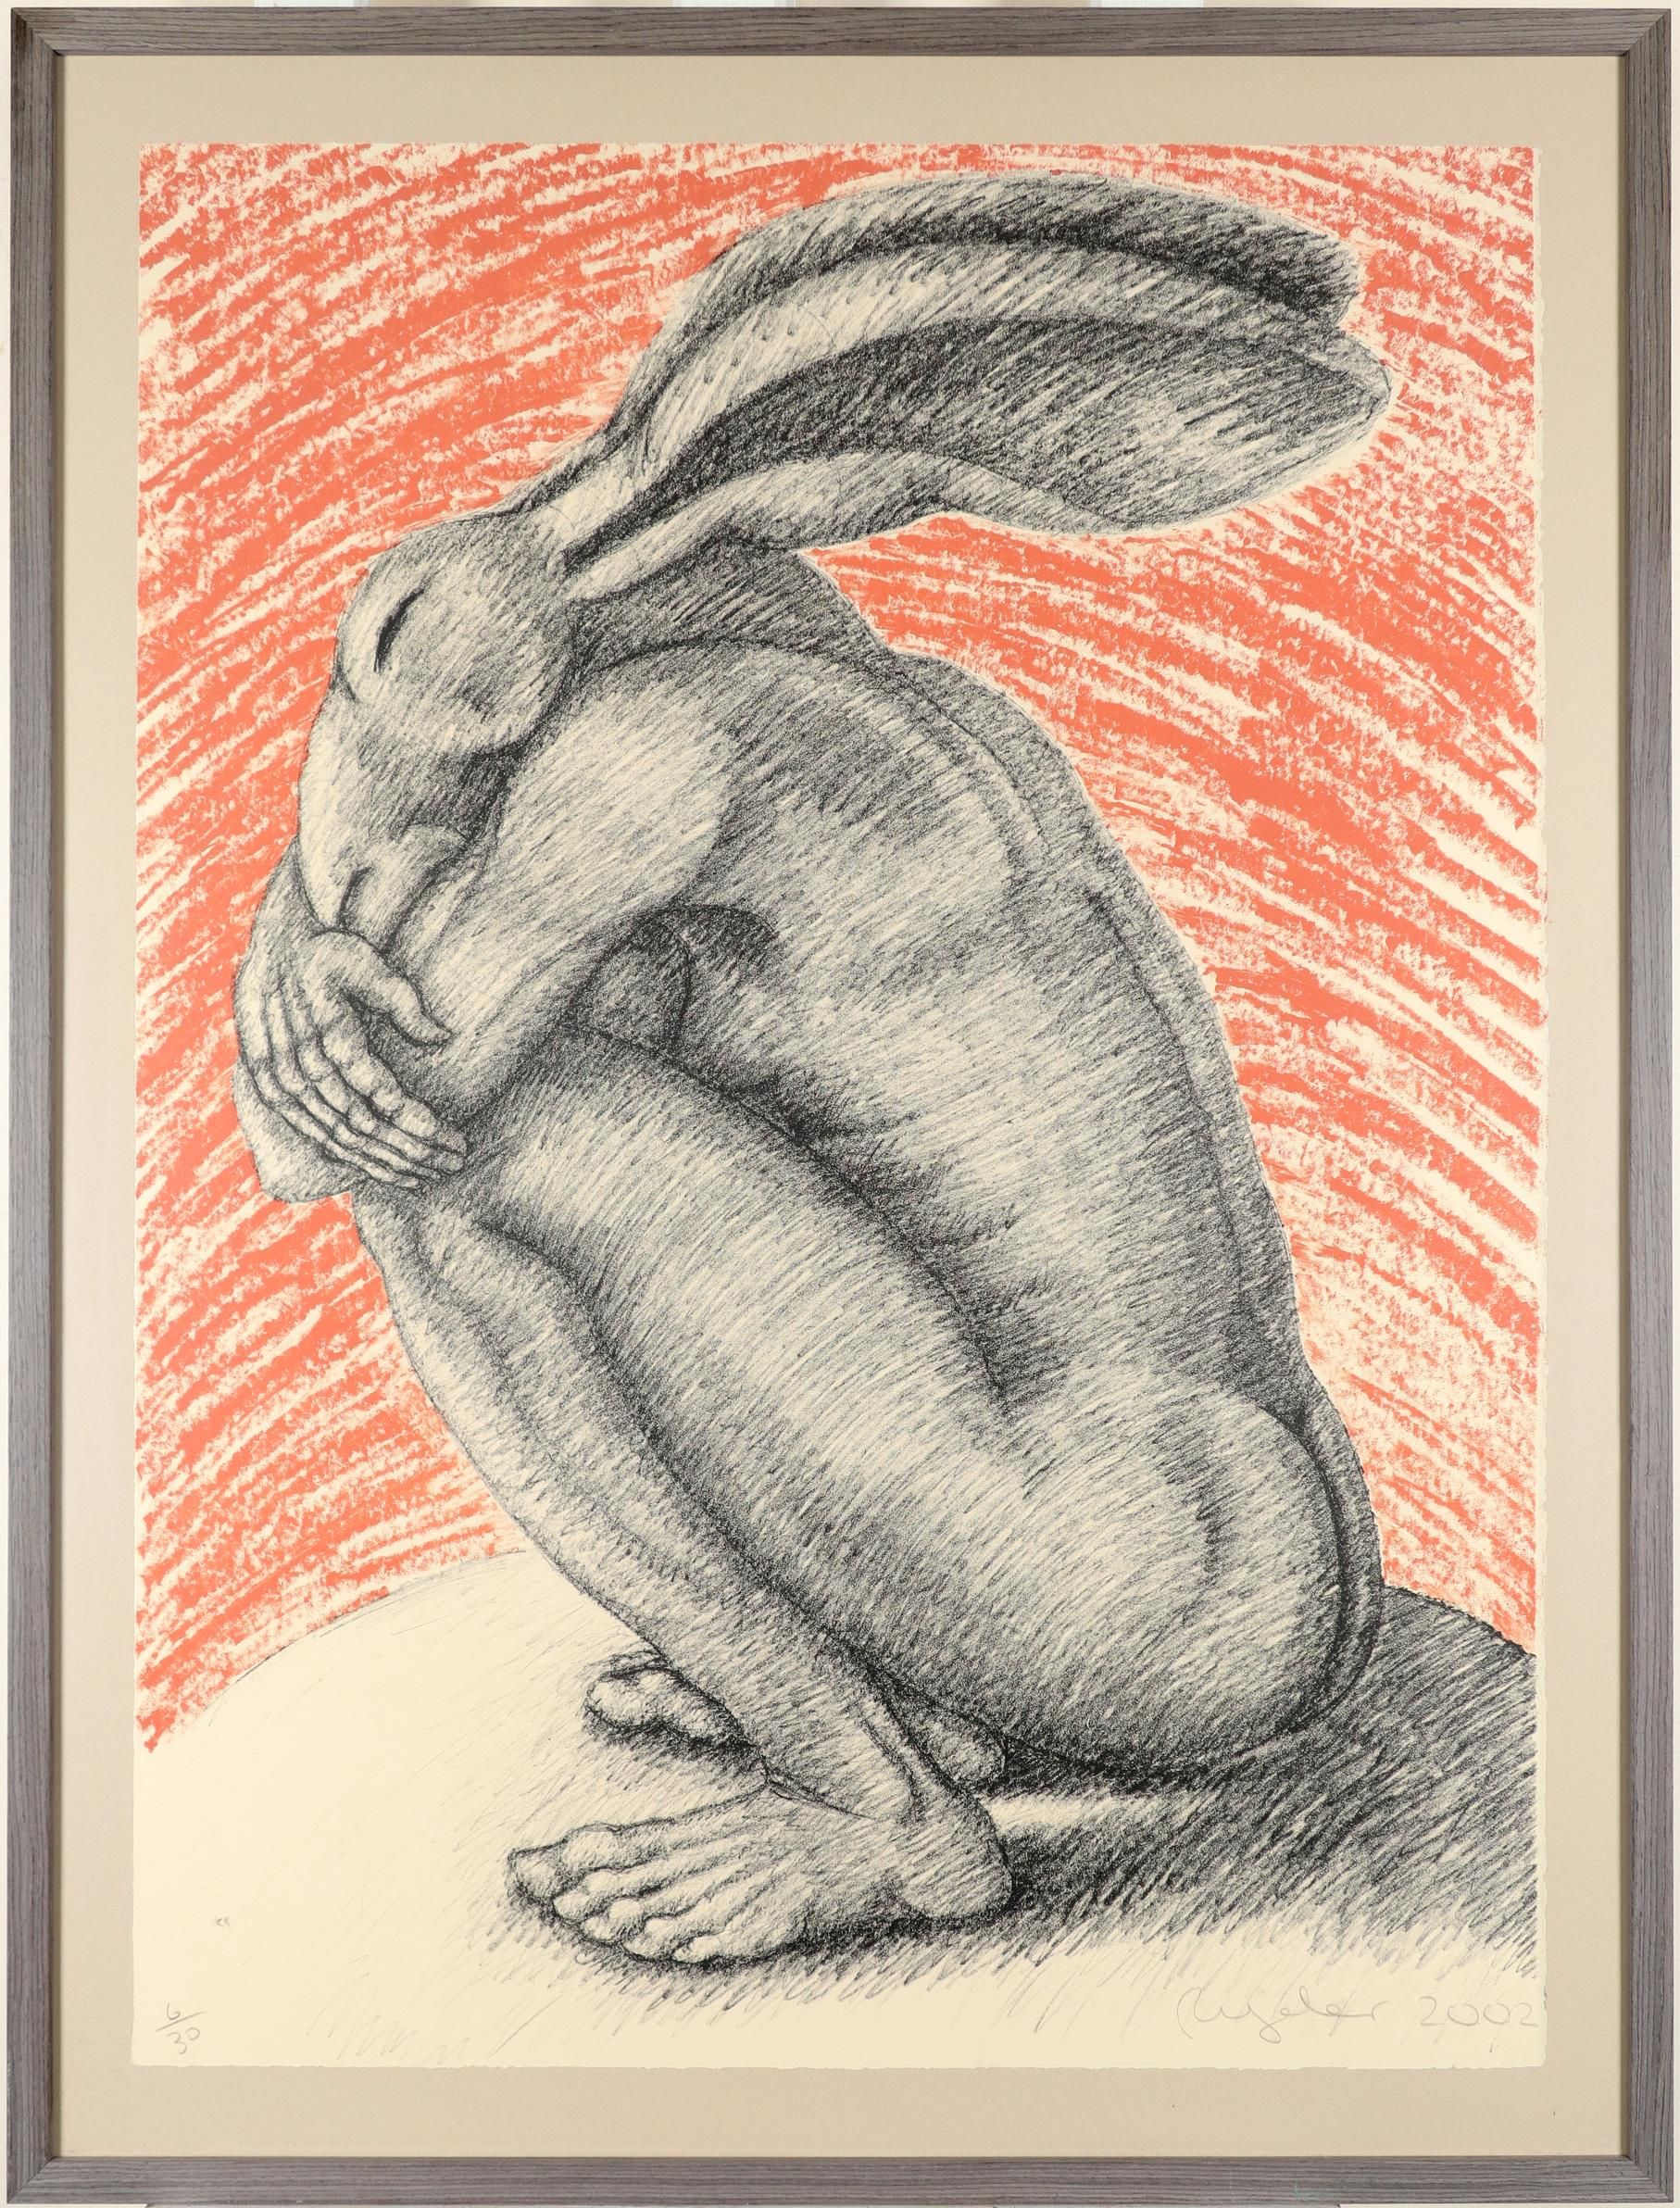 ‡Sophie Ryder (b.1963) Crouching lady-hare Signed, dated and numbered 6/30 Ryder 2002 (in pencil) - Image 2 of 3